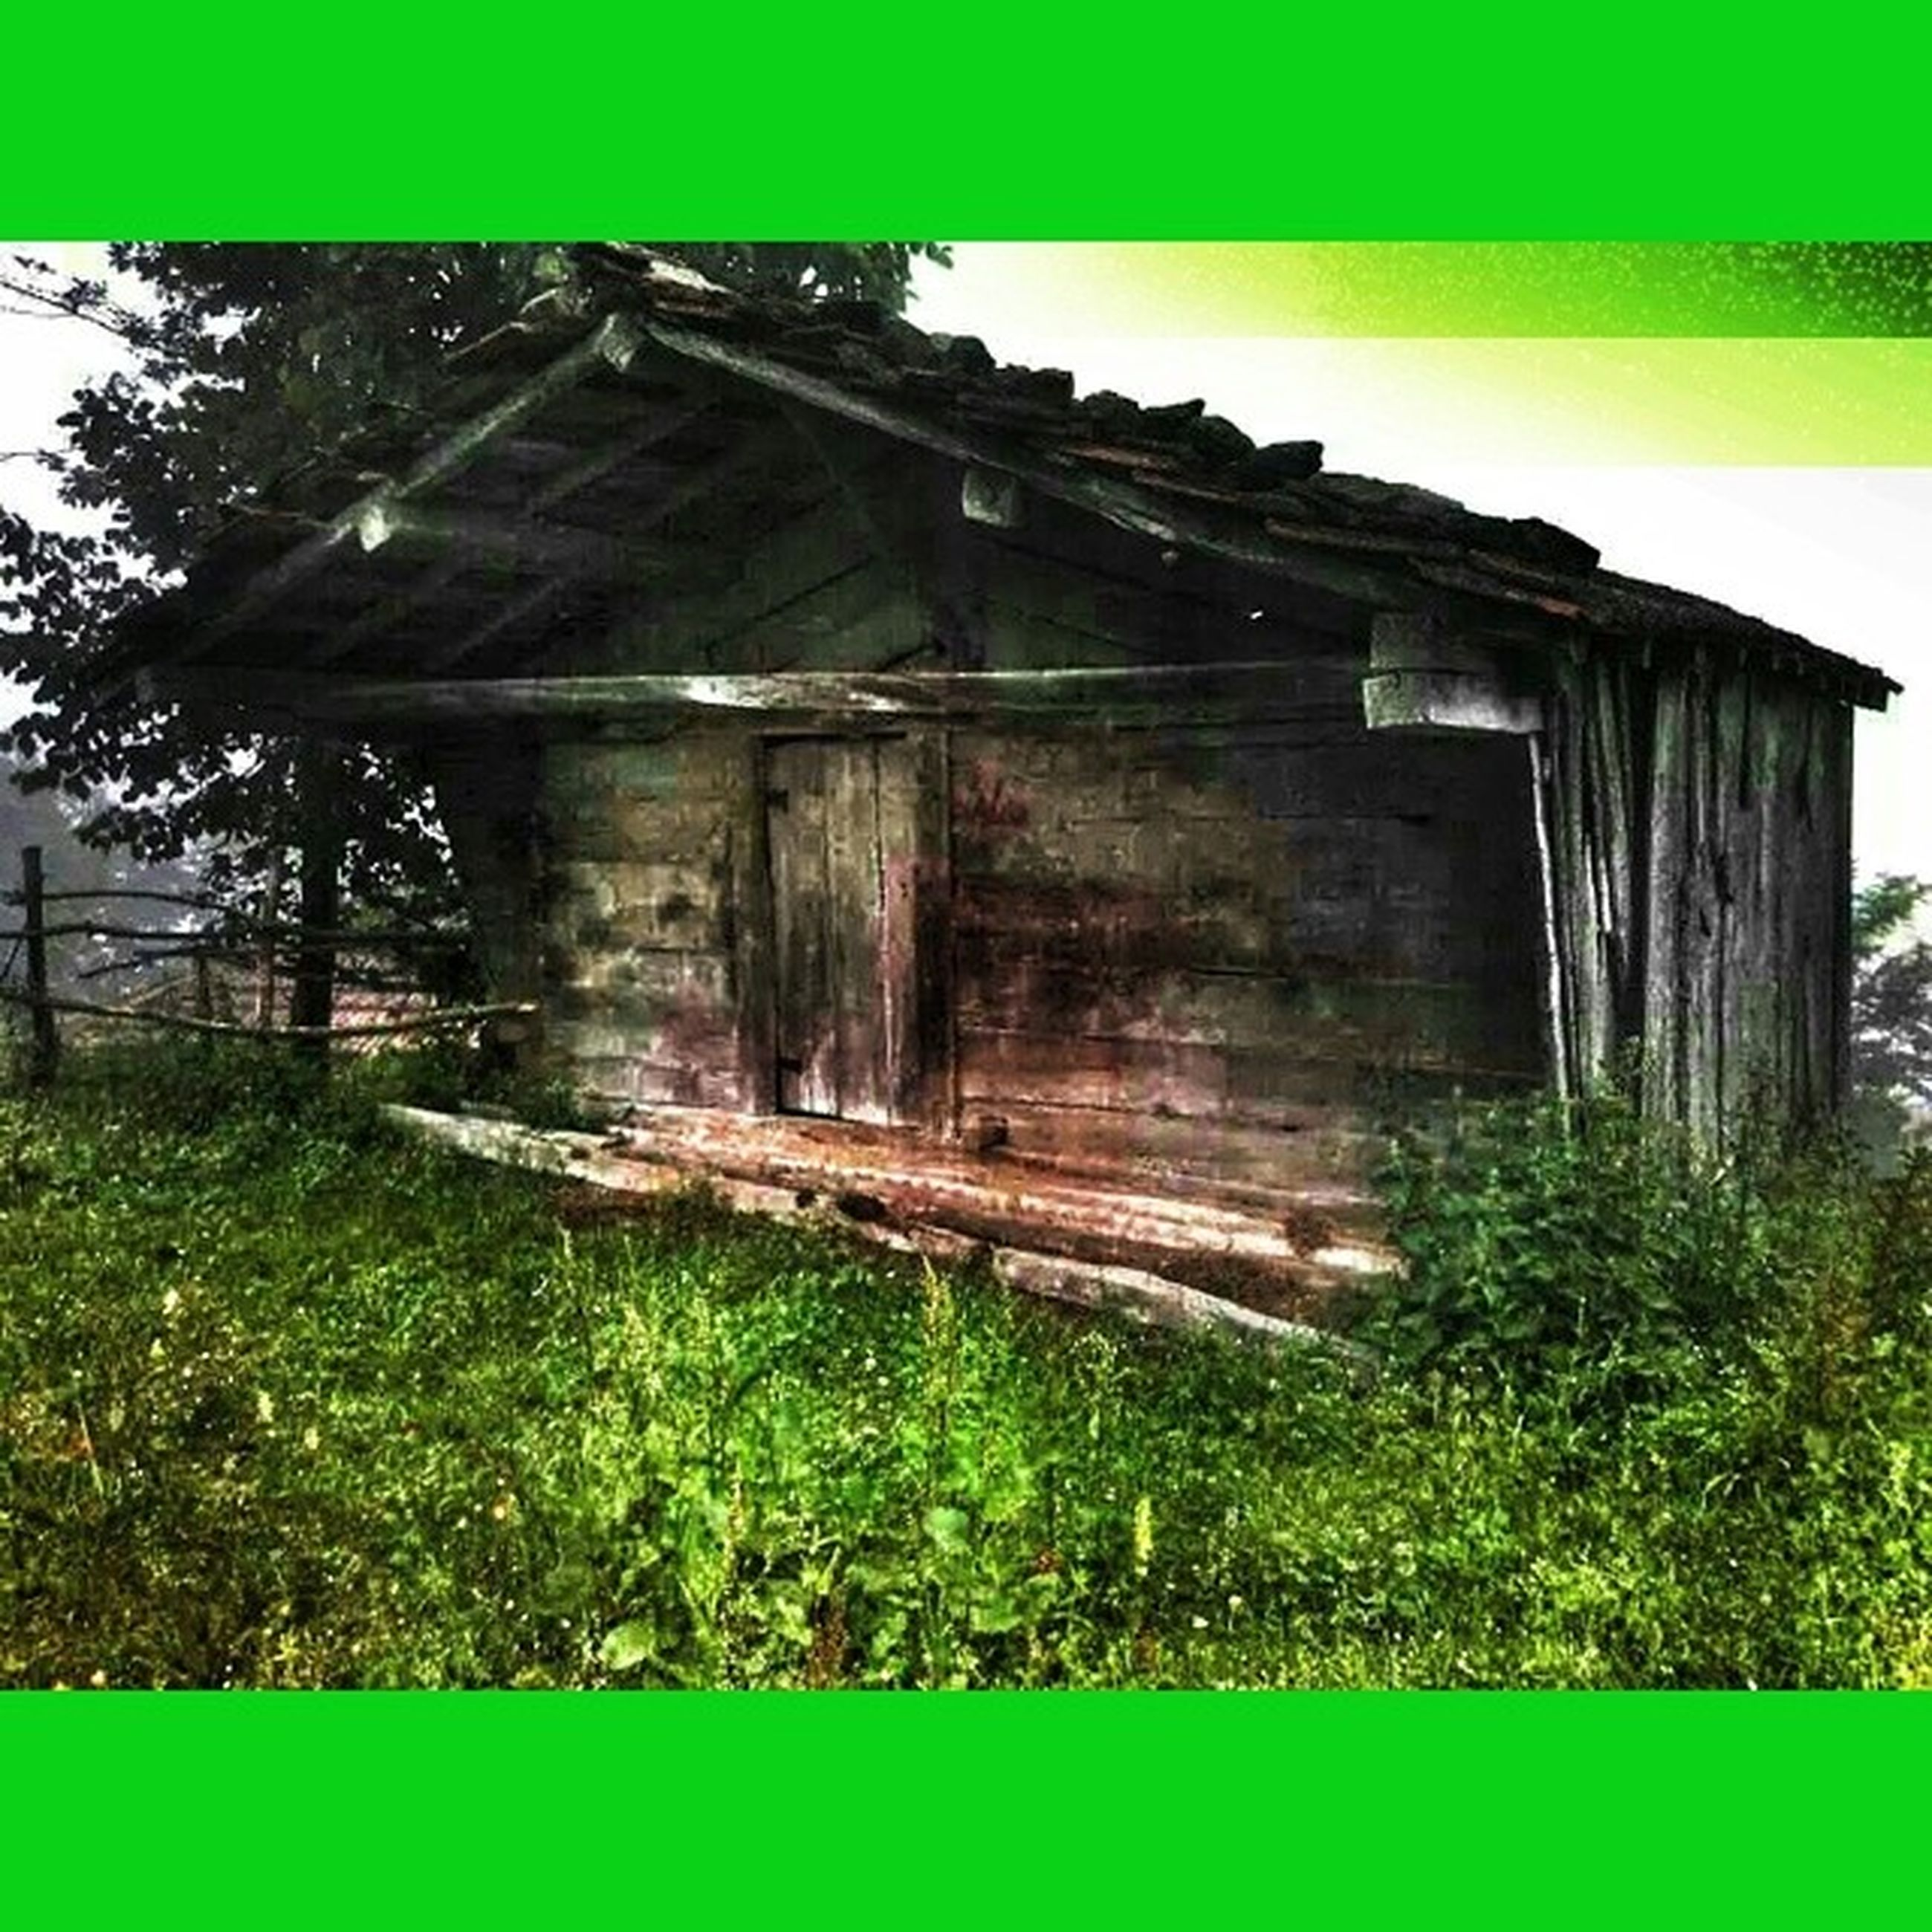 built structure, architecture, wood - material, abandoned, grass, old, building exterior, green color, weathered, damaged, wooden, obsolete, house, deterioration, run-down, field, day, wood, plant, outdoors